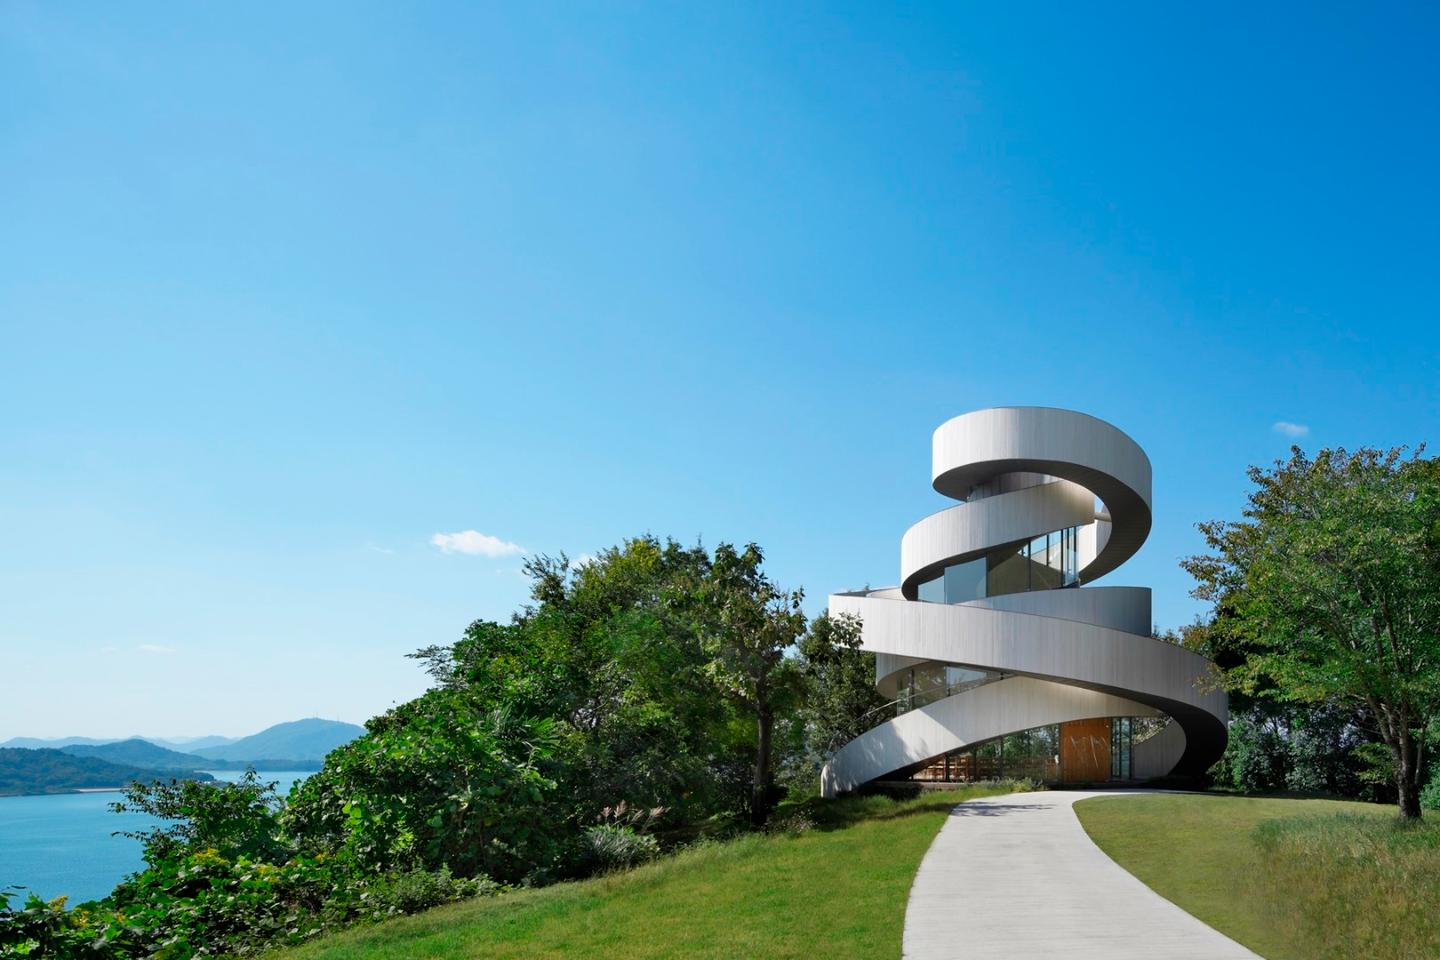 The Ribbon Chapel is a graceful and sculptural wedding chapel